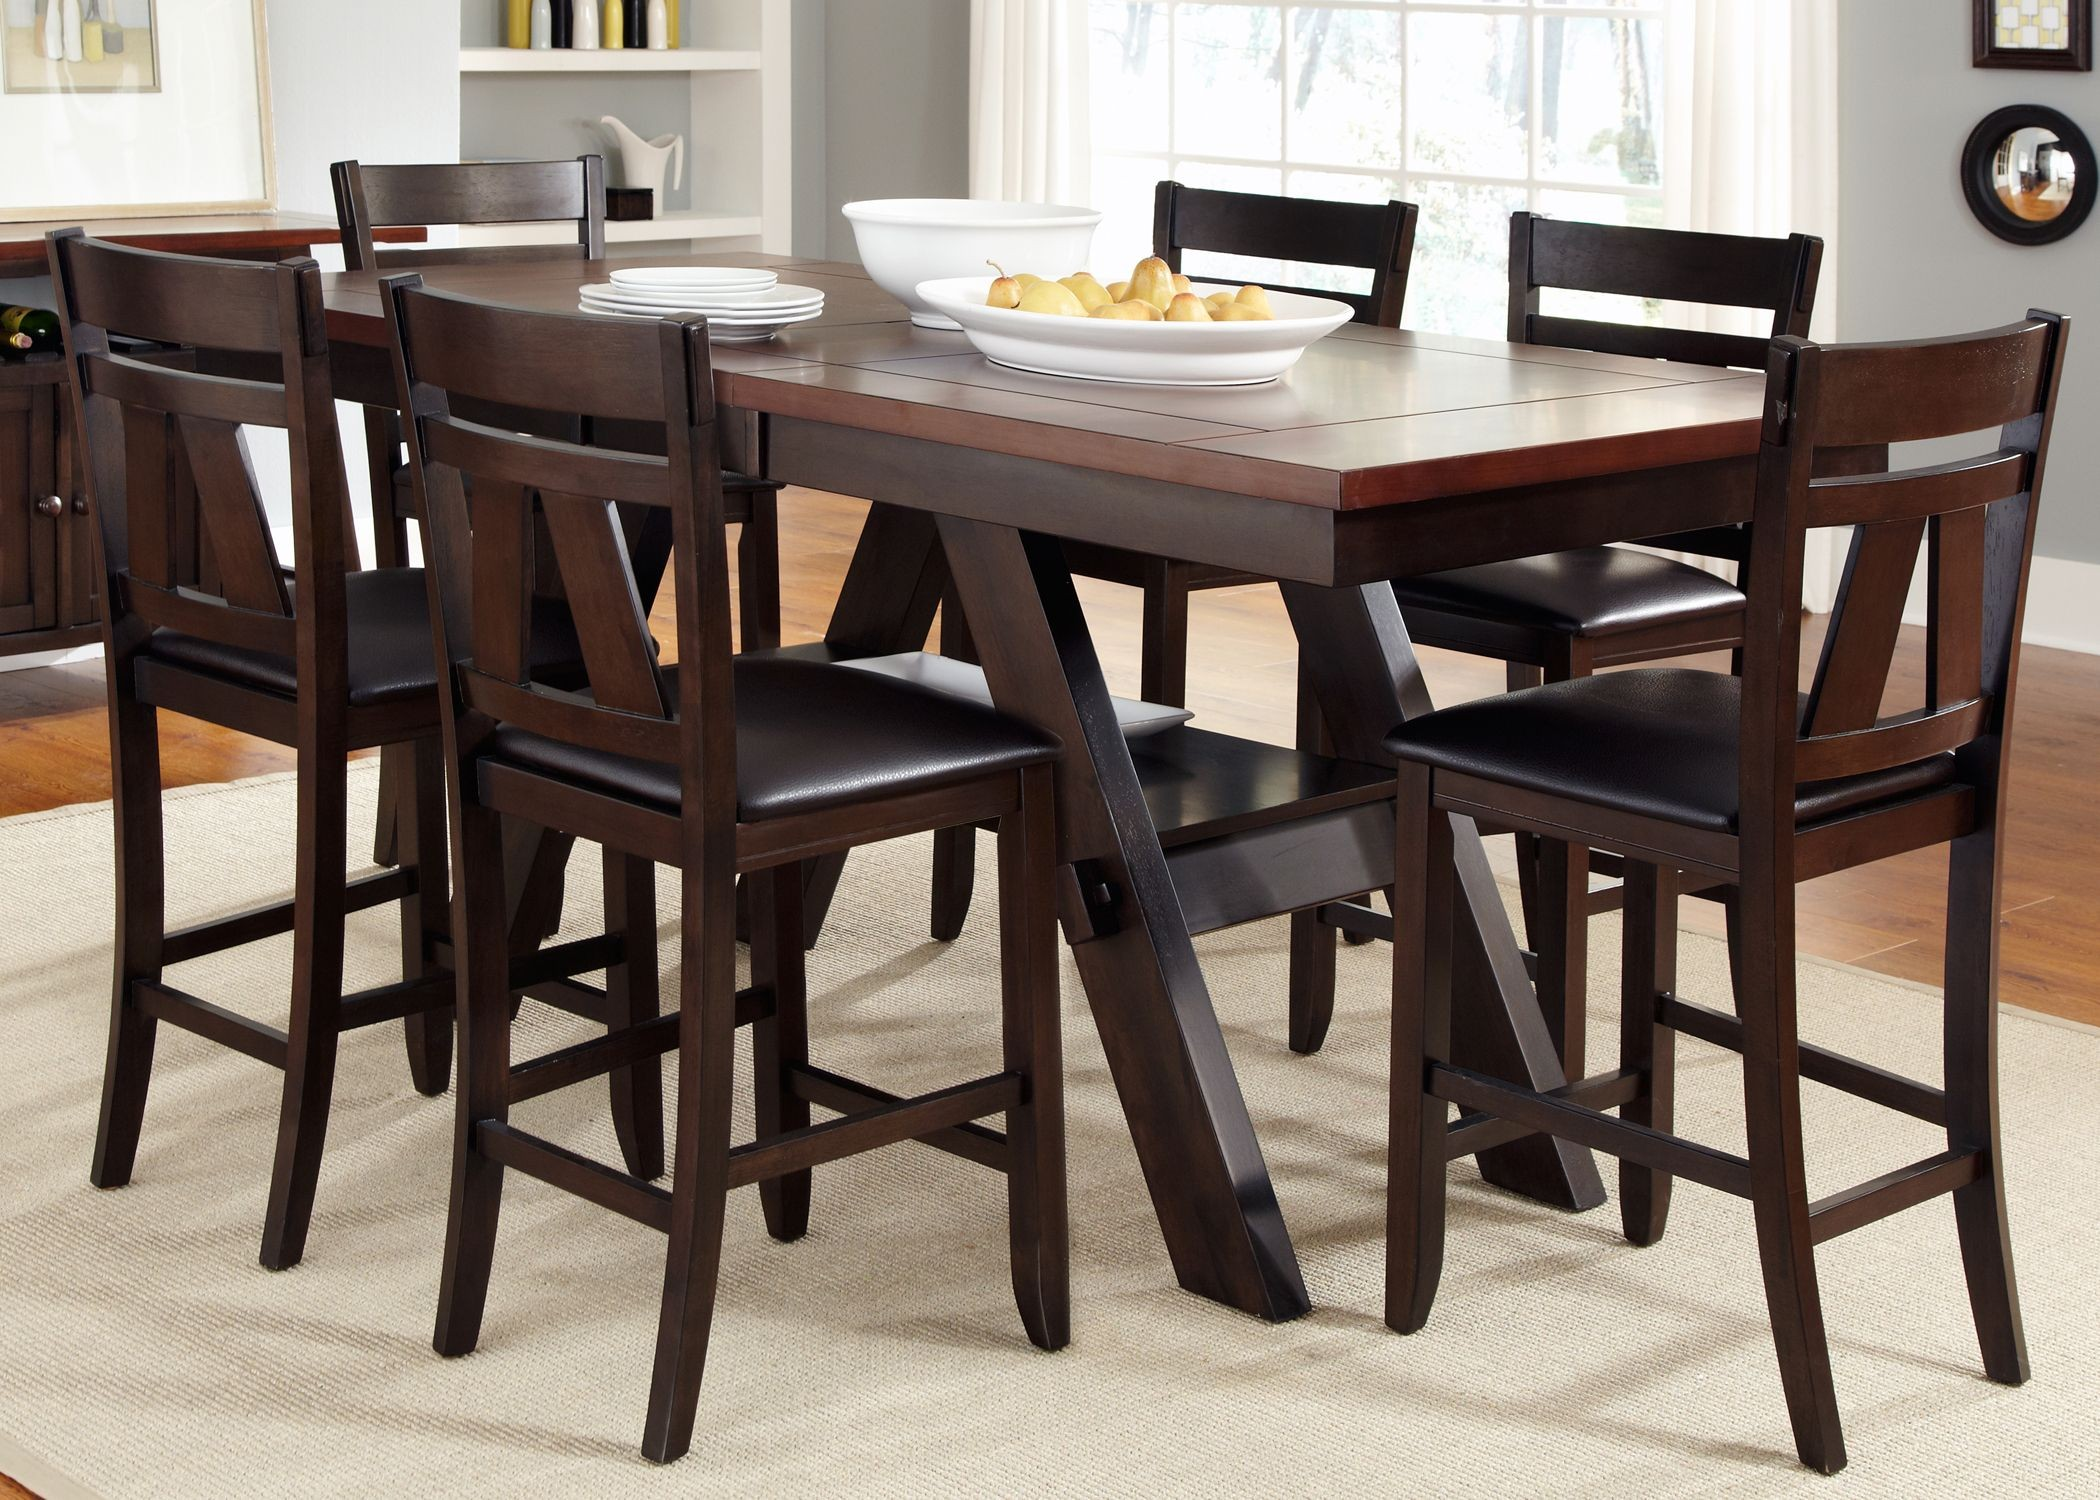 Lawson Gathering Table Dining Room Set From Liberty 116